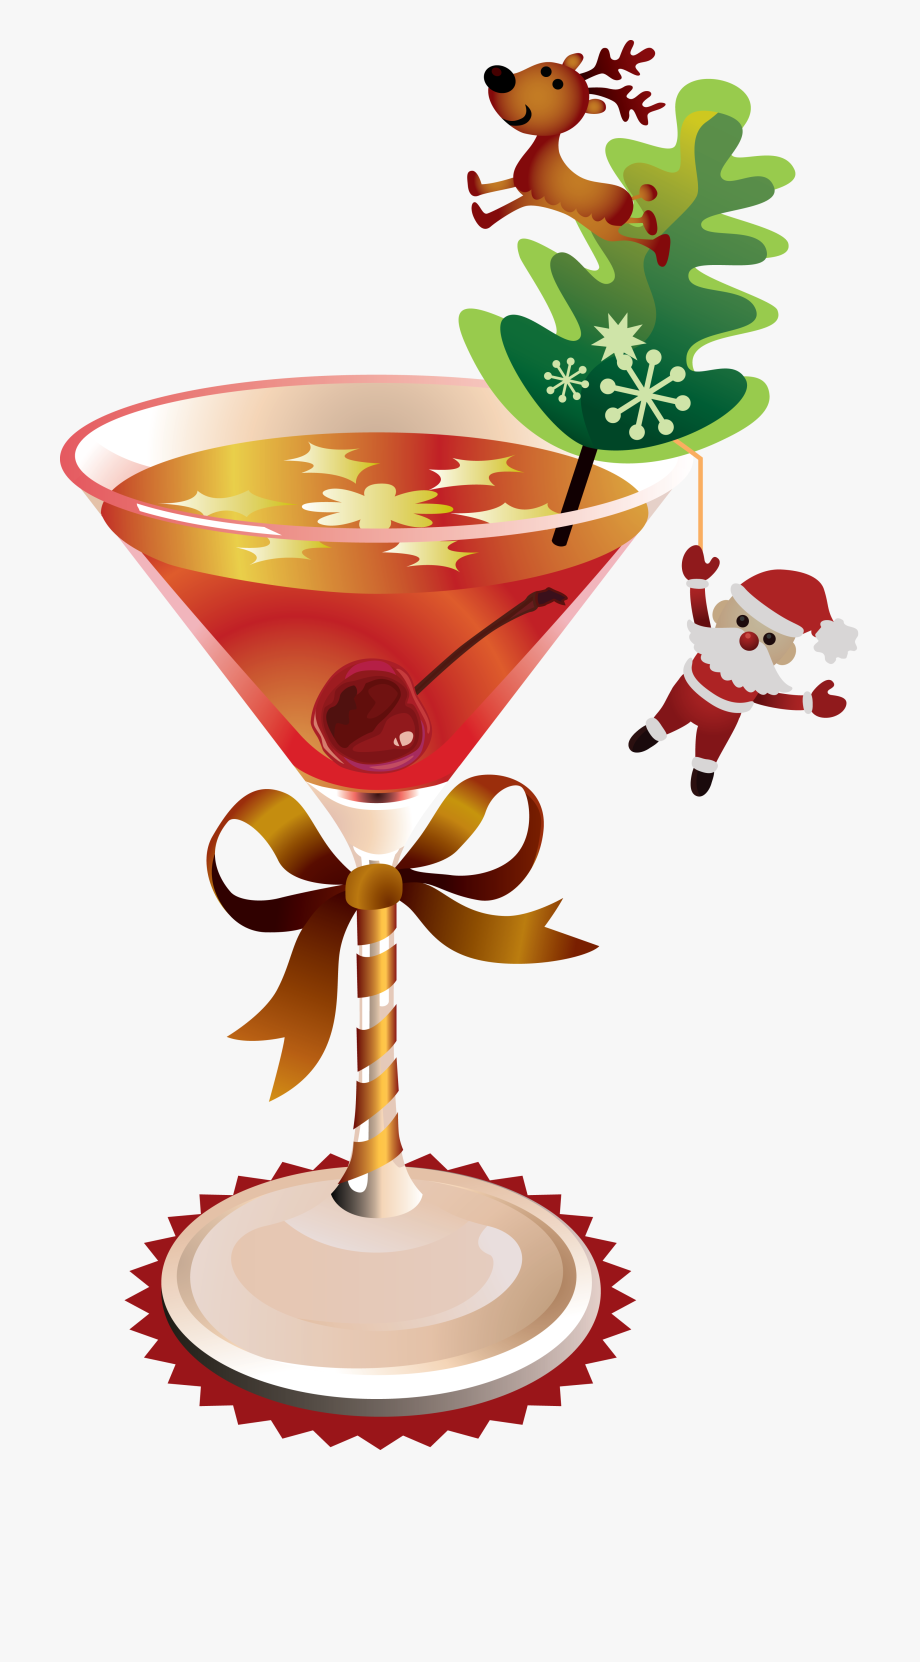 Christimas cocktail clipart image free download Margarita, Martini, Weapon, Cocktails, Glass, Laminas - Christmas ... image free download